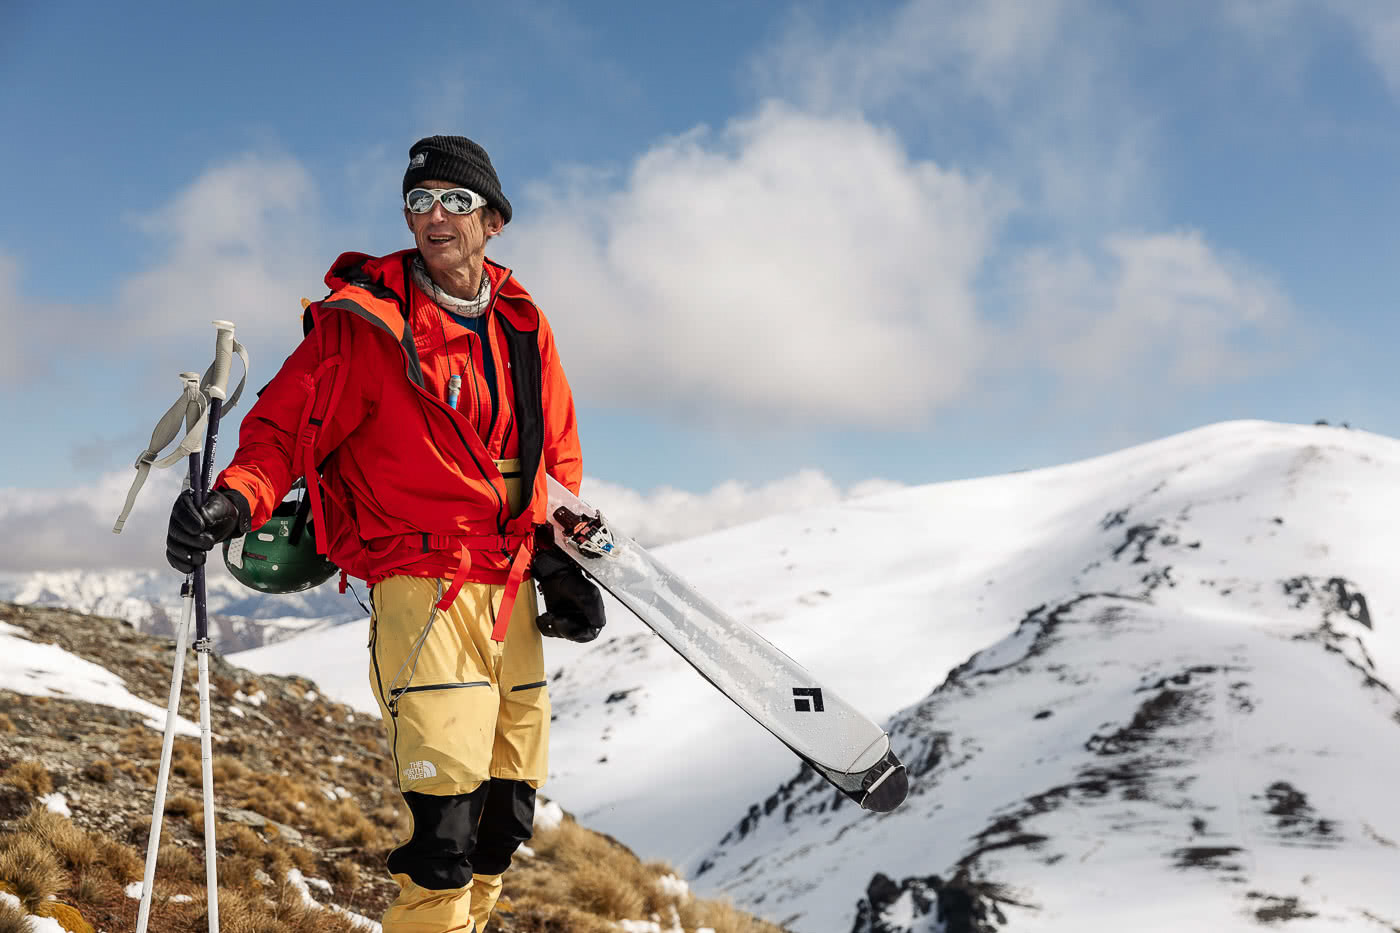 Just How Revolutionary Is FUTURELIGHT Waterproof Breathable Gear? We Tested It Out In NZ, photo by Mark Clinton, the Remarkables, The North Face, New Zealand, skiing, tim mcartney-snape